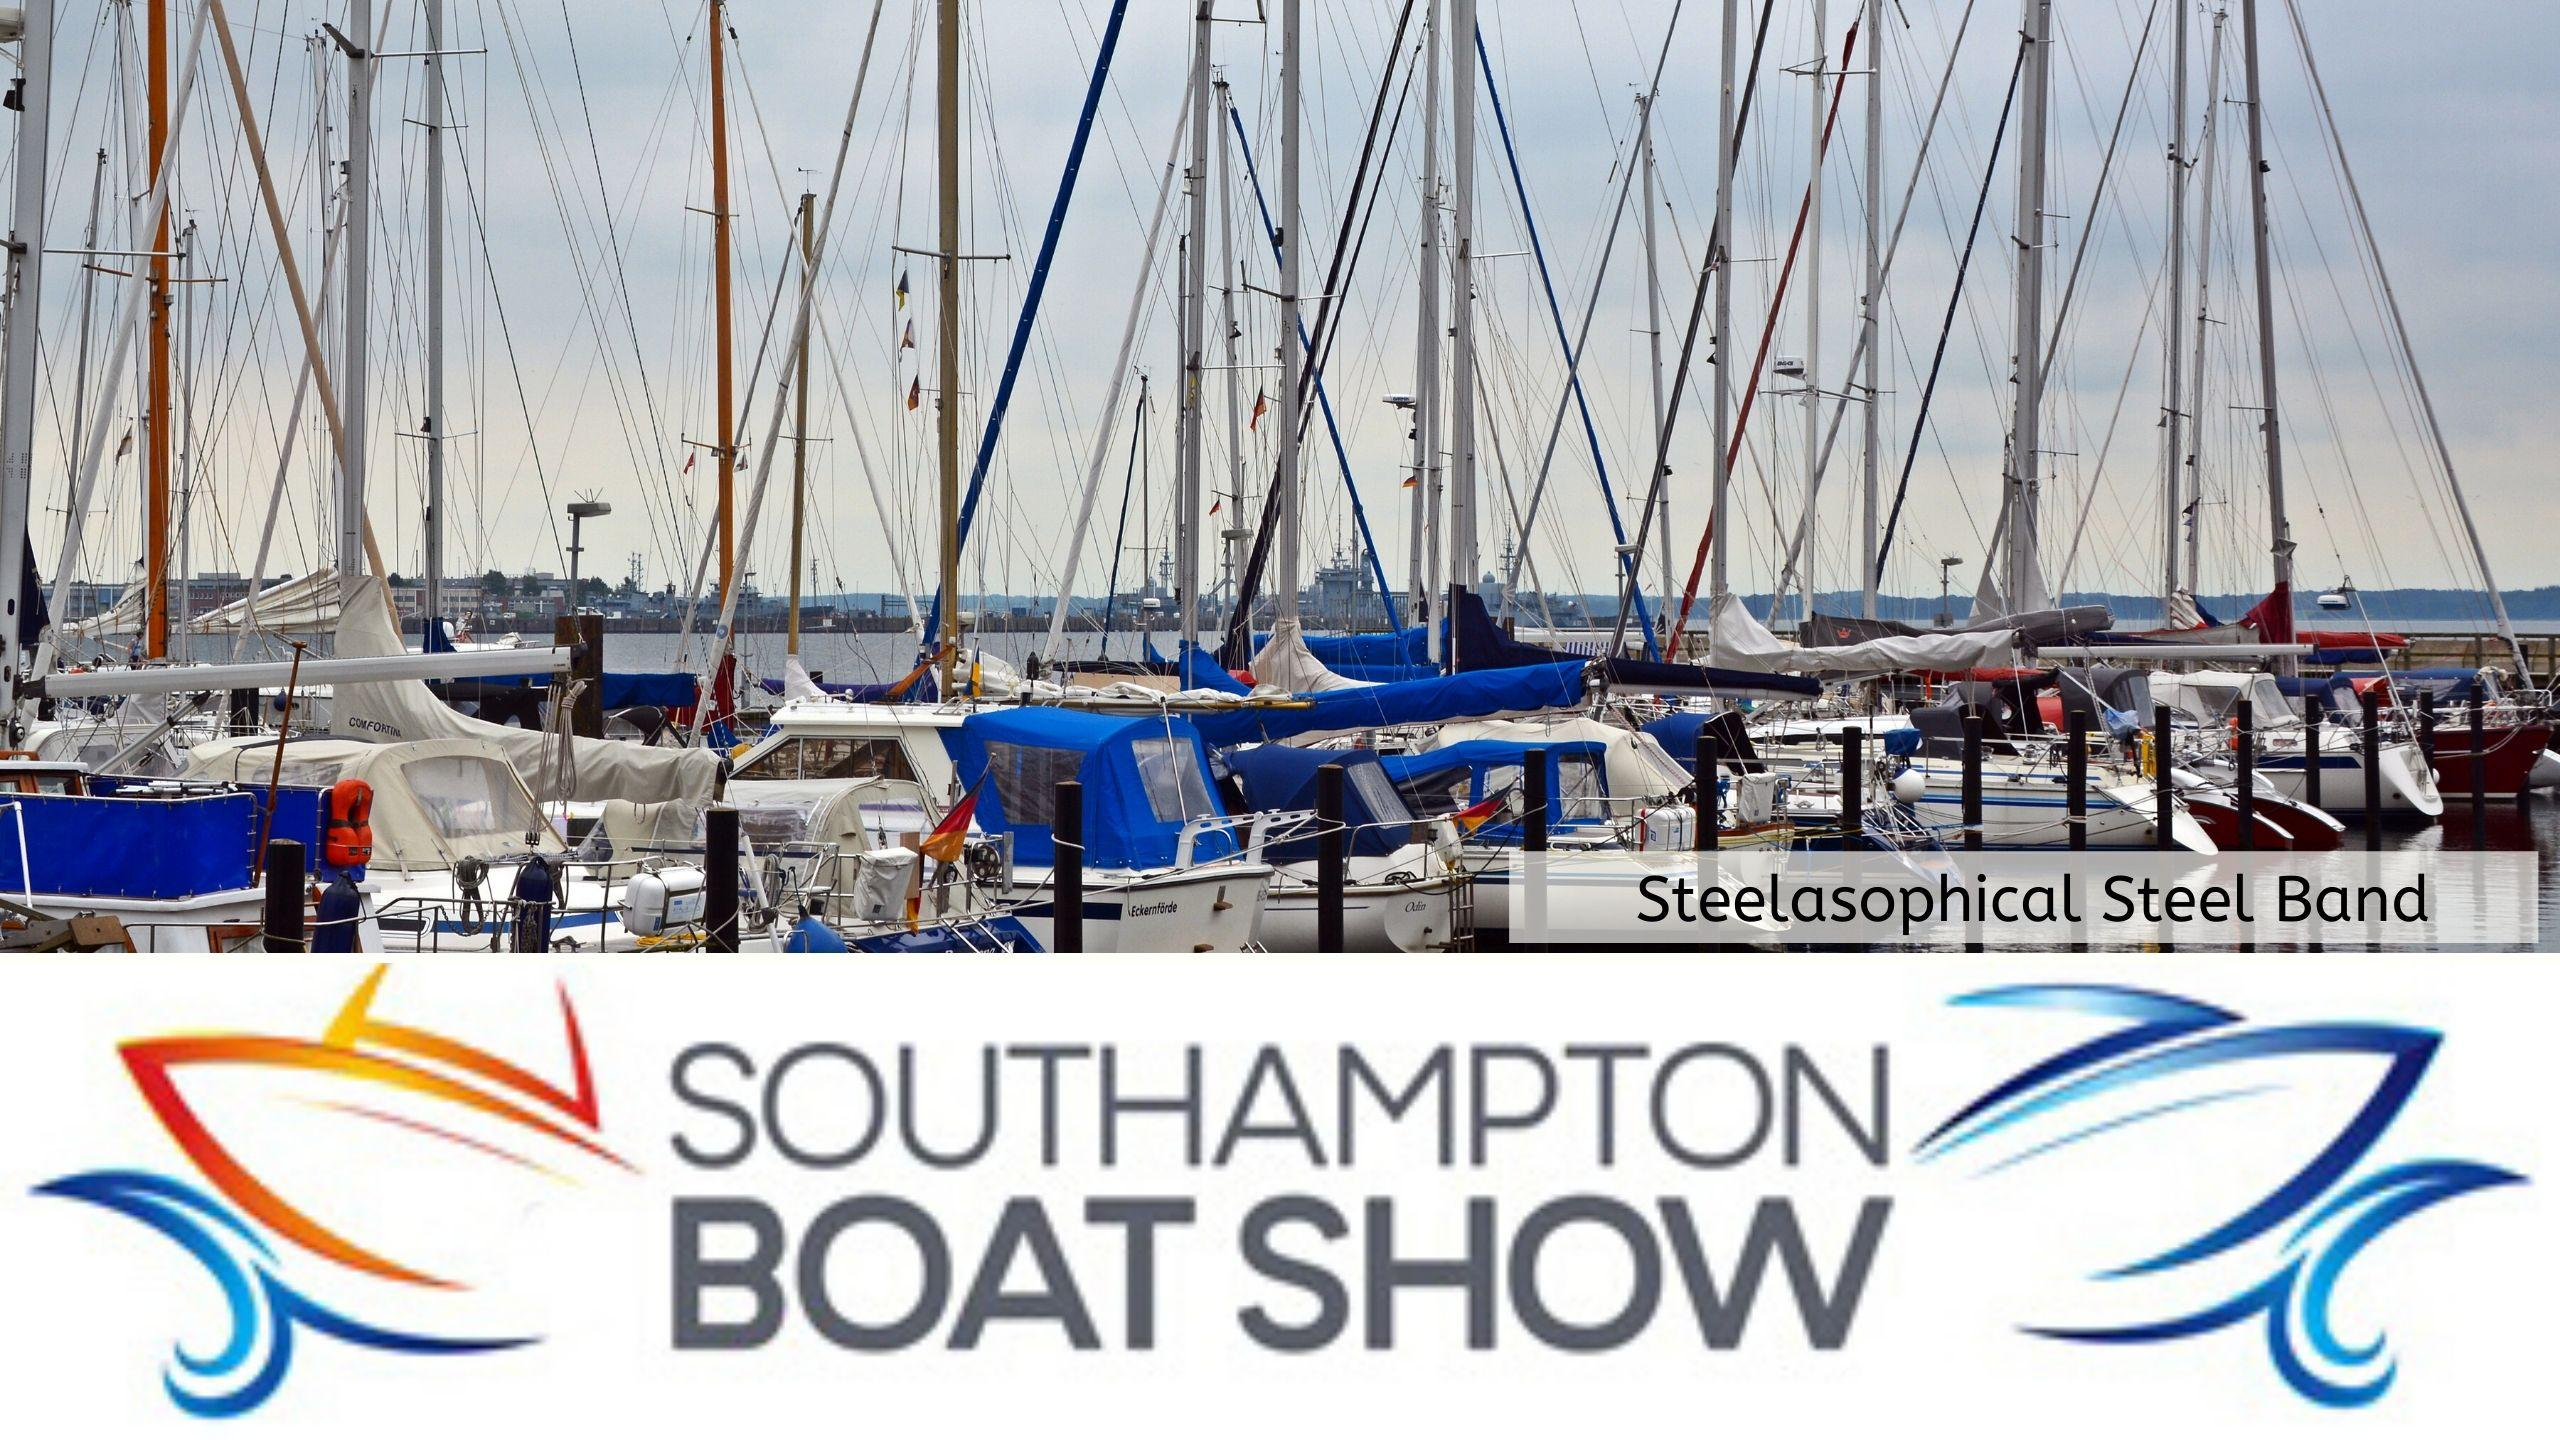 Steelasophical Steel Band Southampton Boat Show Yacht Market Sailing Ships